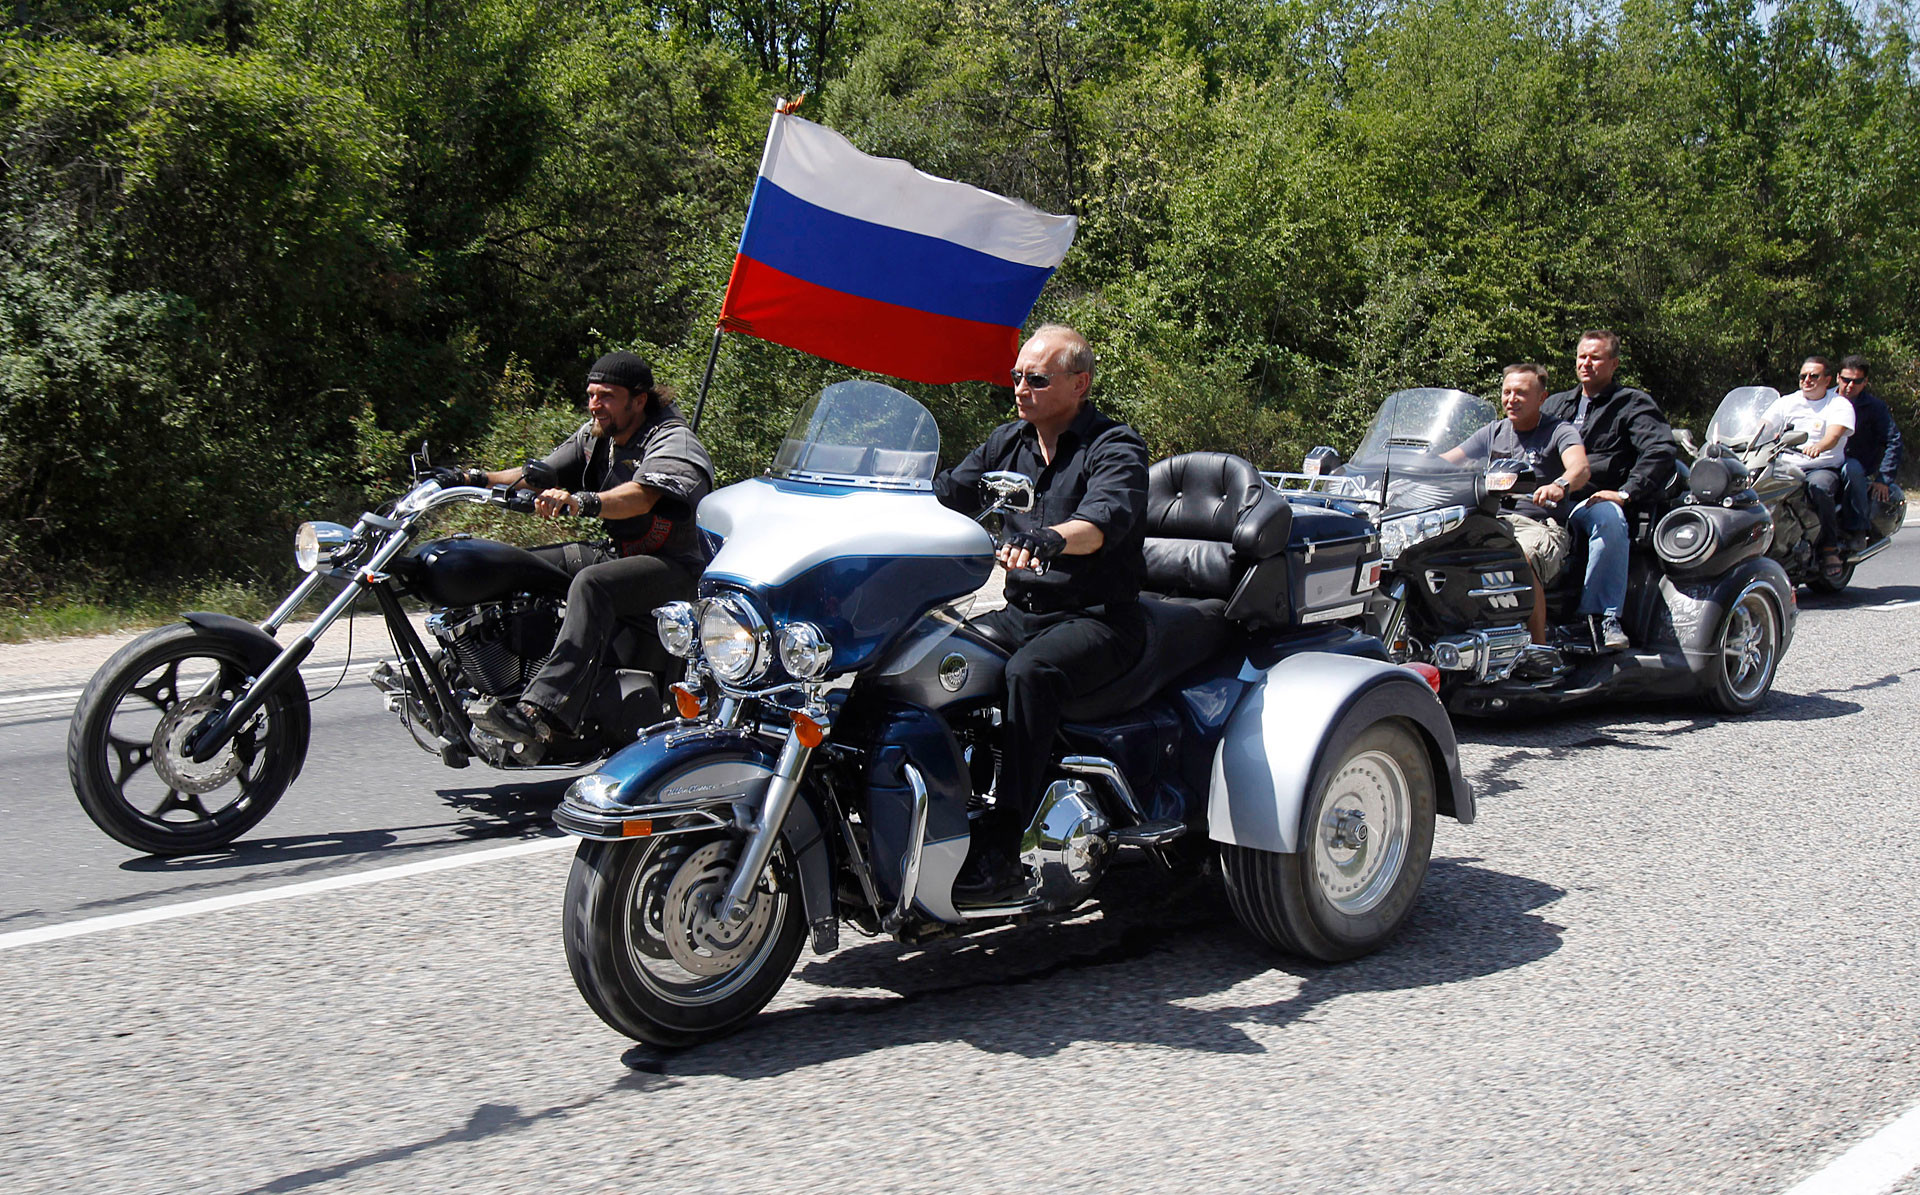 Vladimir Putin rides a Harley Davidson Lehman Trike as he arrives for a meeting with Russian and Ukrainian bikers.